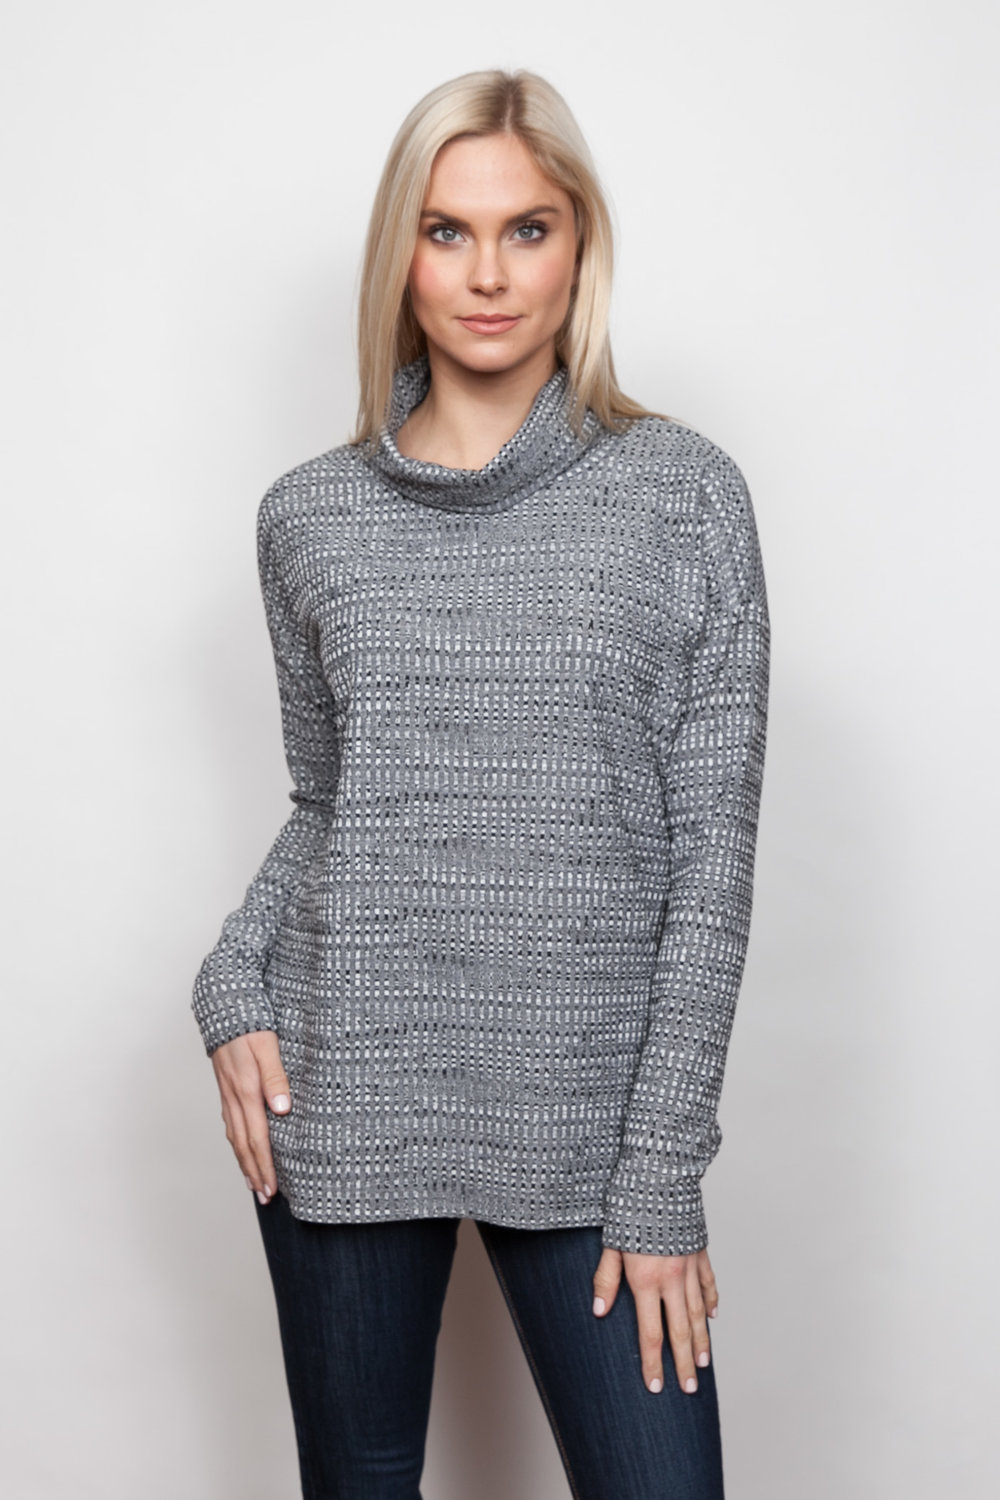 Copy of Style # 92440-18, p 5 </br>Tweedy Mini Check Jacq'd </br>Color: Charcoal